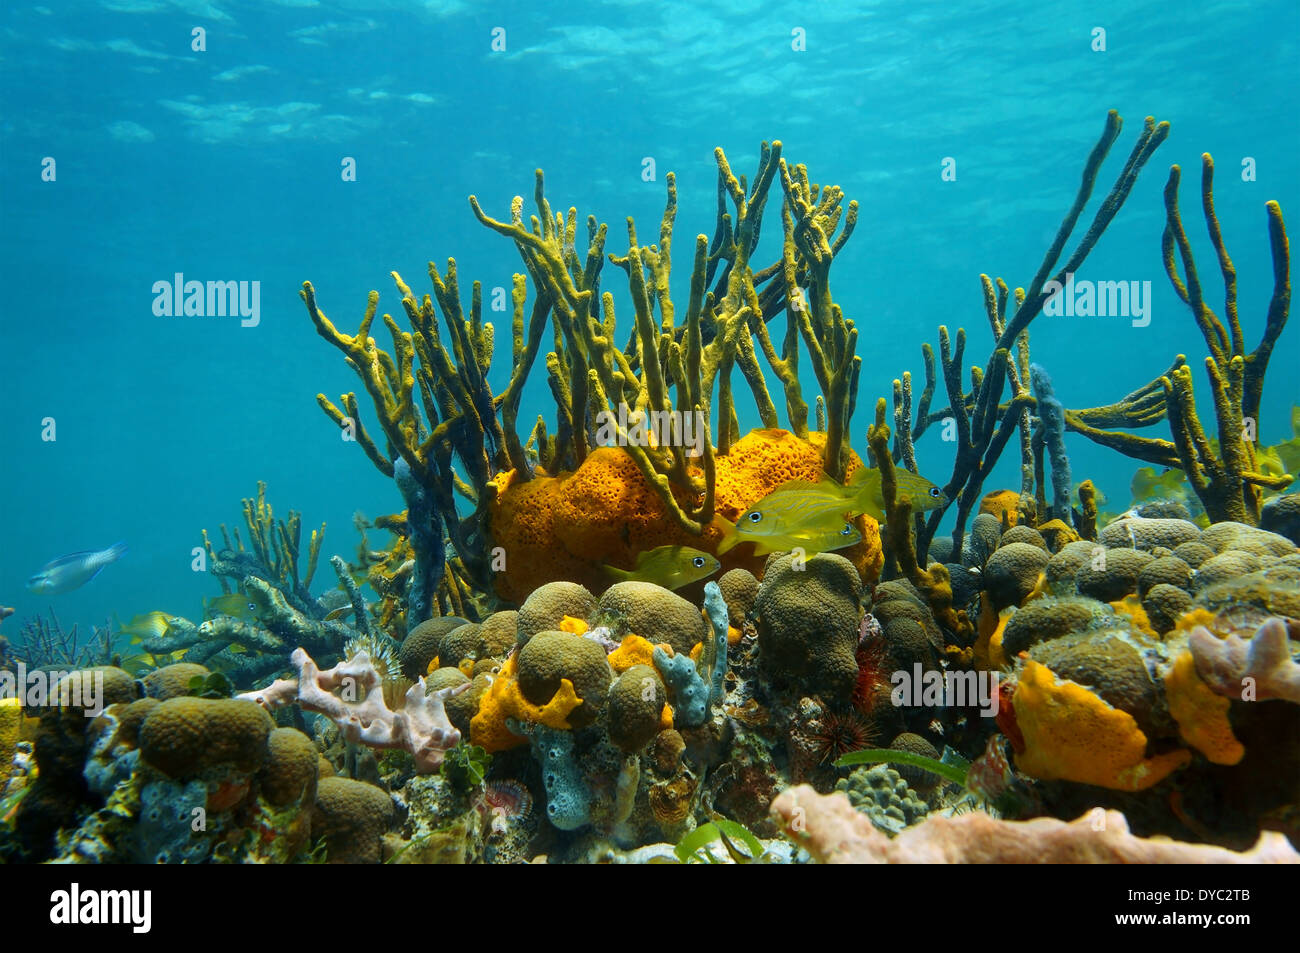 Underwater scenery with colorful marine life in a coral reef of the Caribbean sea, Mexico - Stock Image